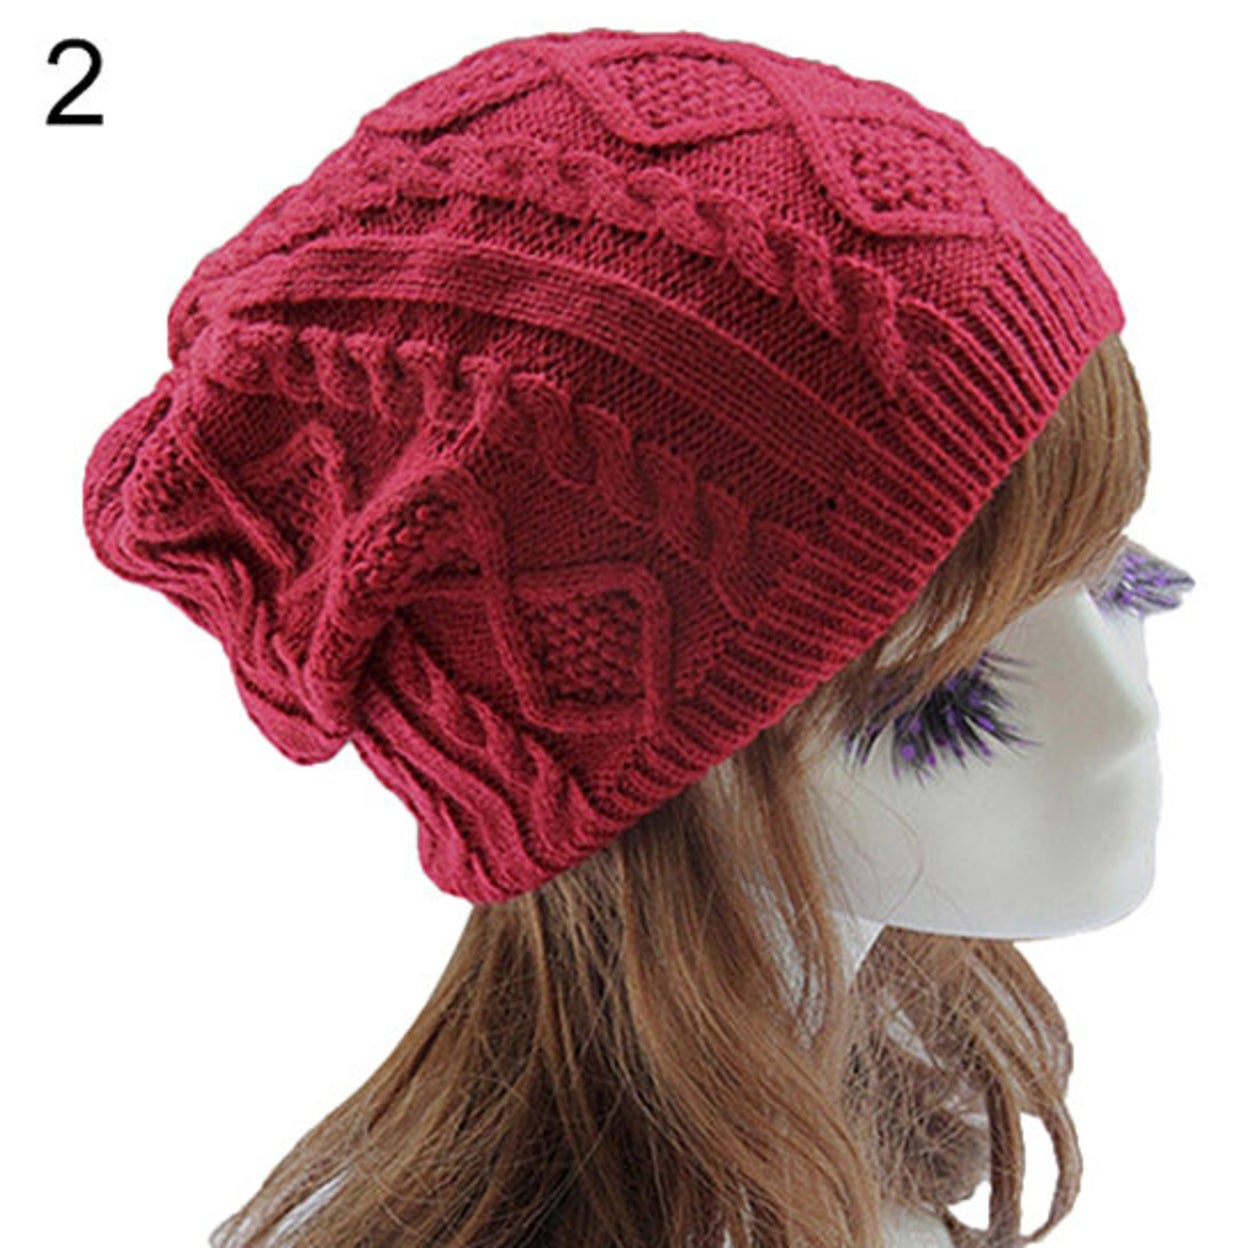 651161e0872 Shop Lady Women s Knit Winter Warm Crochet Hat Braided Baggy Beret Beanie  Cap - On Sale - Free Shipping On Orders Over  45 - Overstock - 23172784